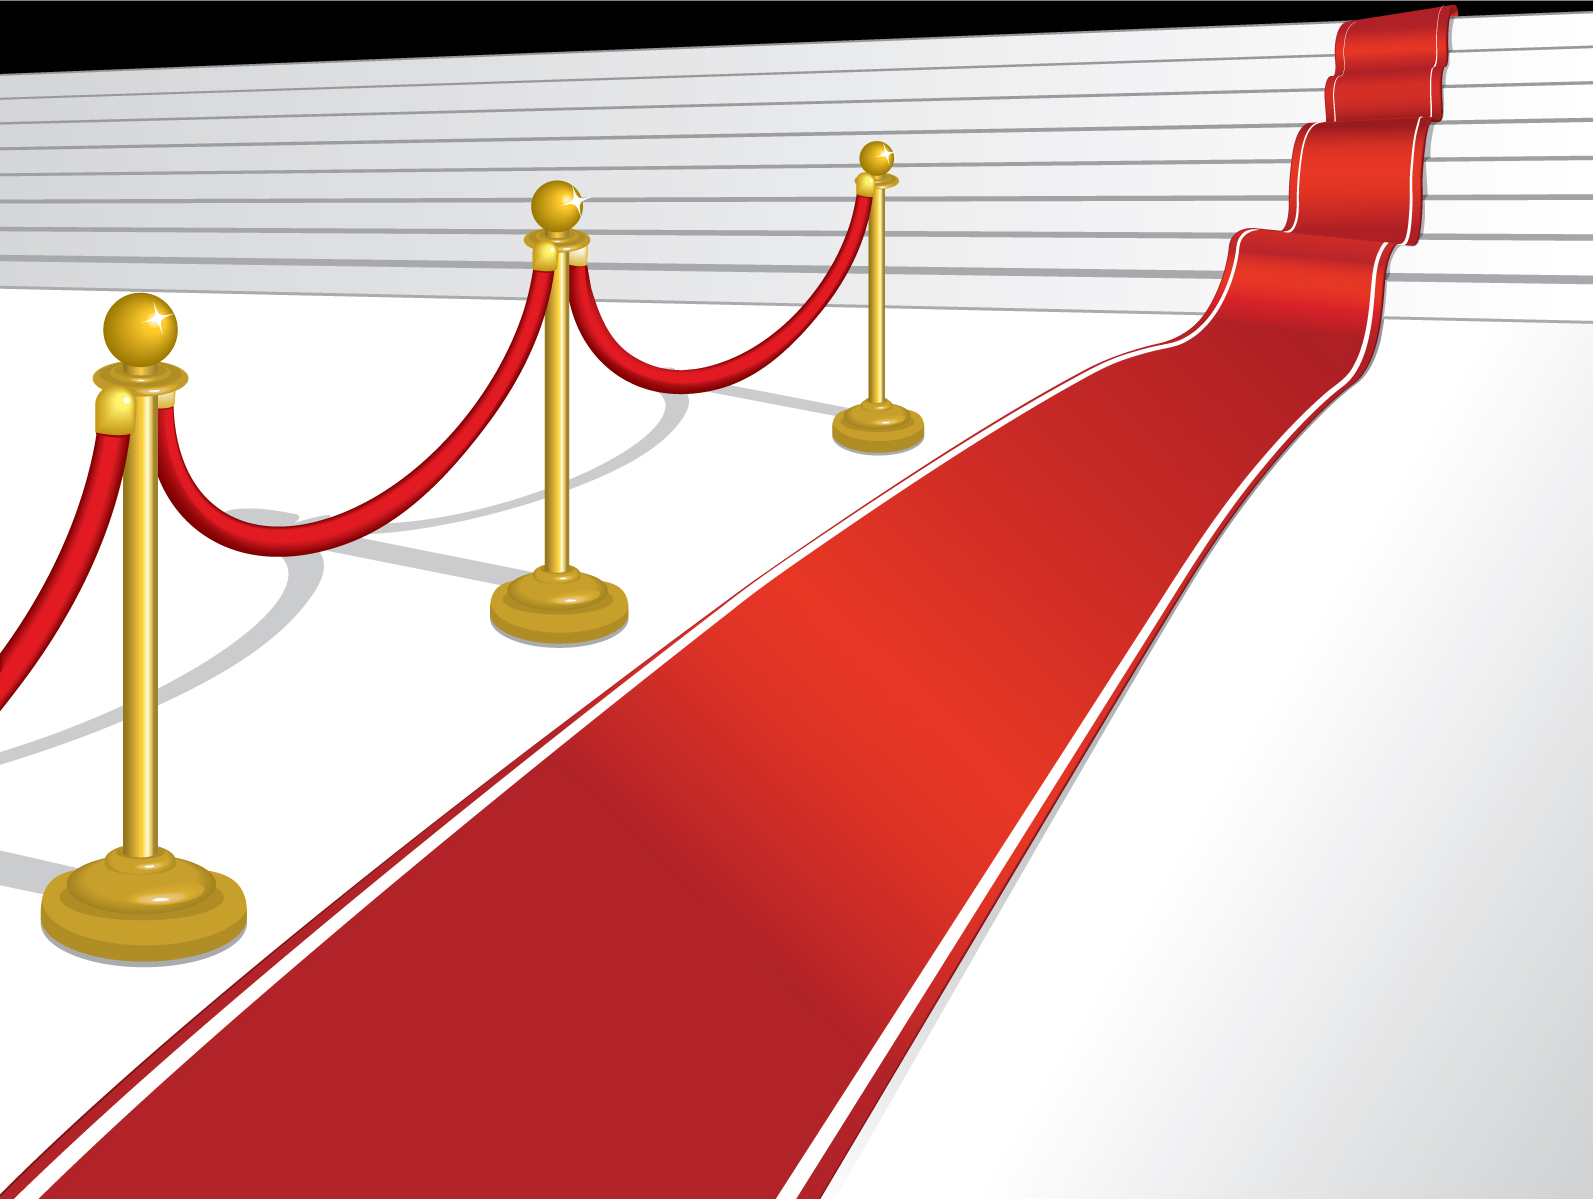 Award Night likewise Chatham lib ny as well Curtain besides Considering Chuck Jones additionally 201601140012. on oscar night clip art